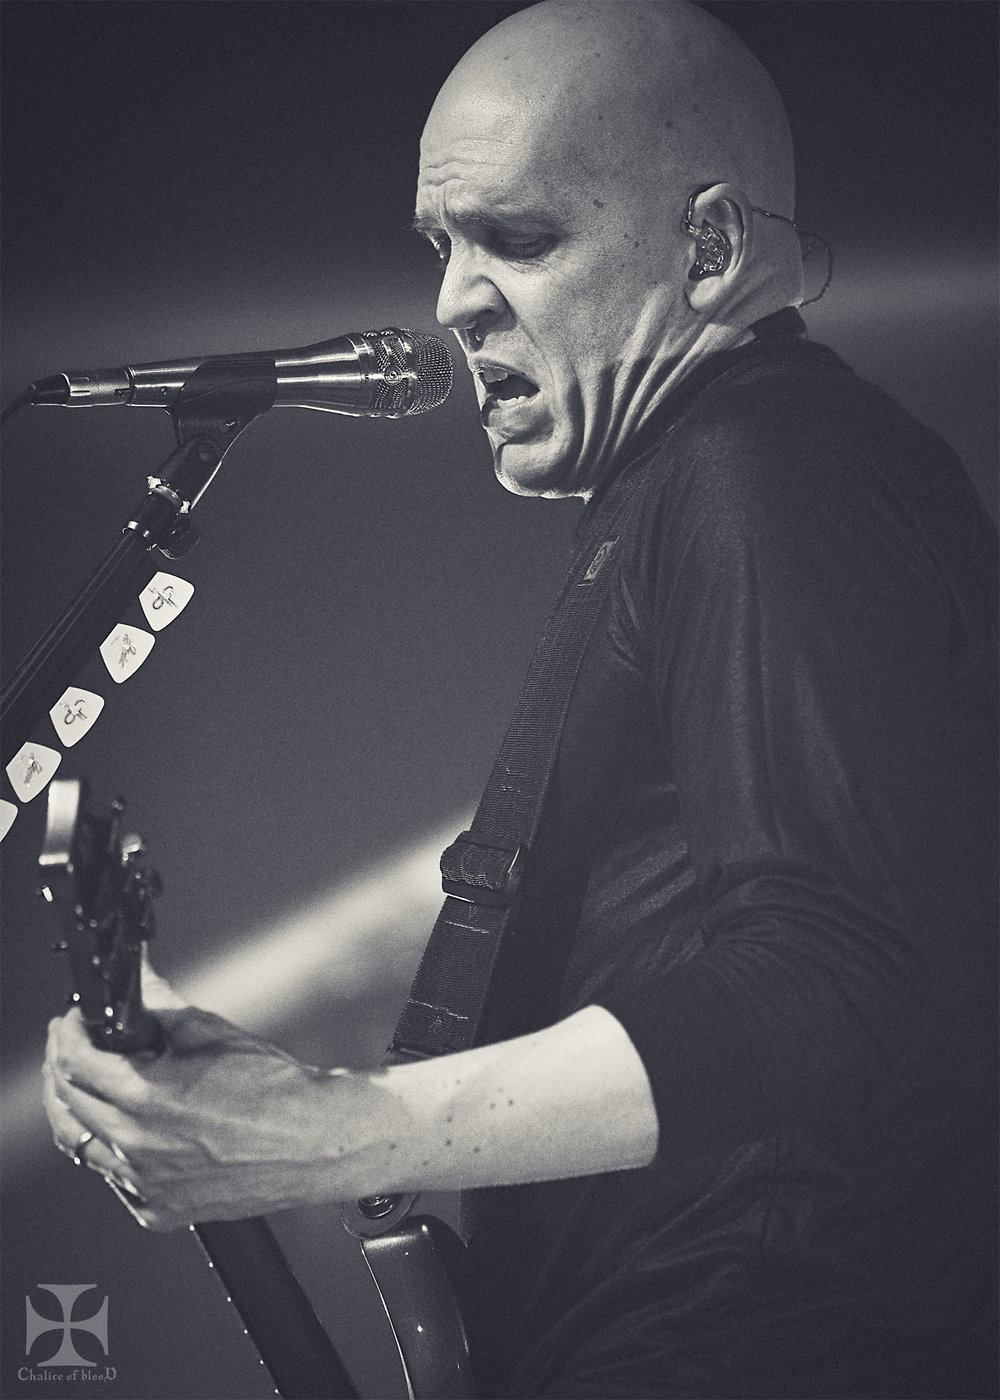 2017.05-Devin-Townsend---44-Exposure-watermarked.jpg